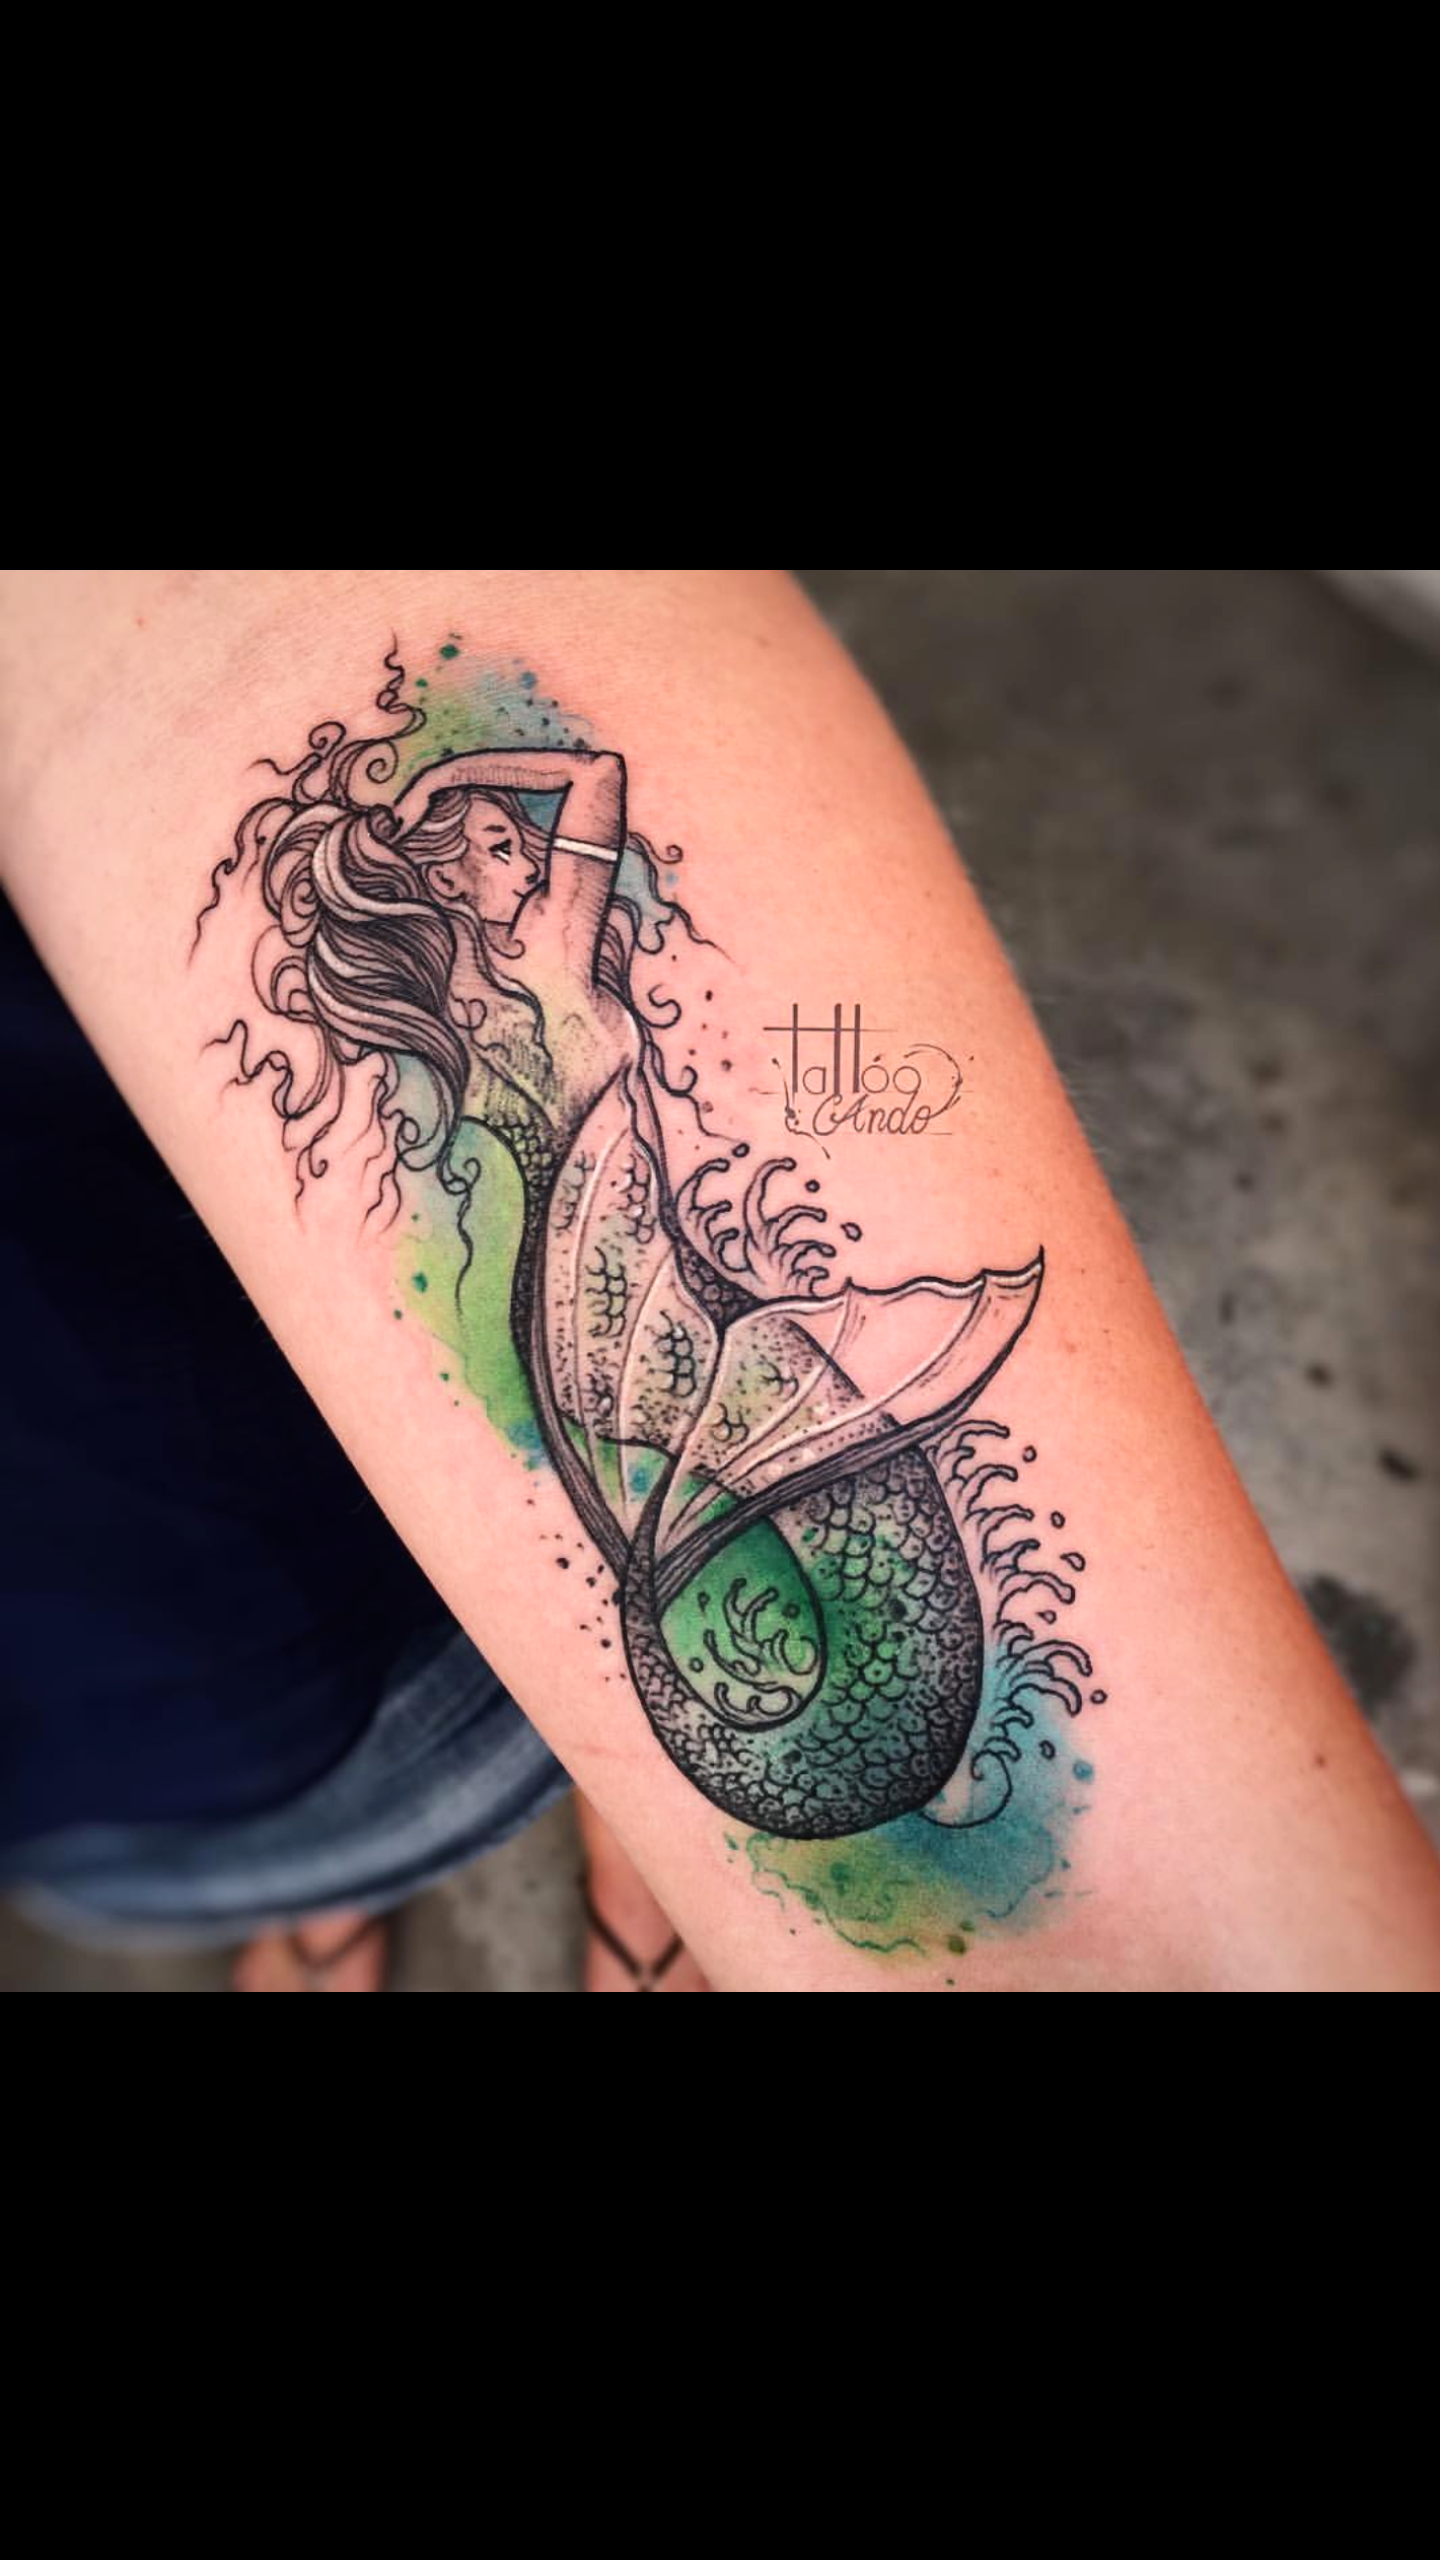 Mermaid Tattoo Watercolor Tattoo Mermaid Tattoo Designs Mermaid Tattoo Mermaid Tattoos